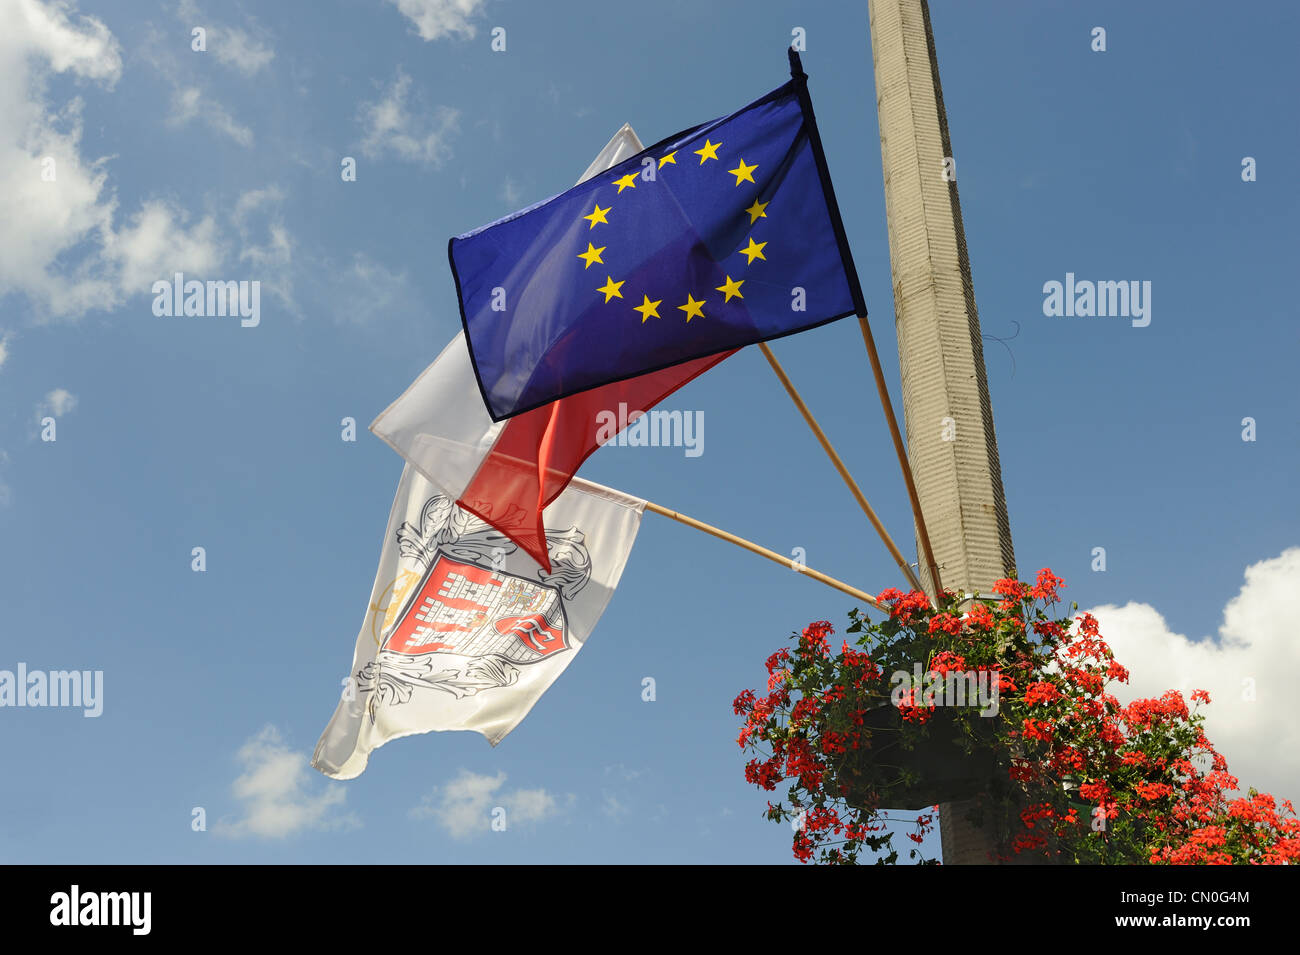 National, EU and the city of Radom flags on a lamp post, Radom, Poland - Stock Image